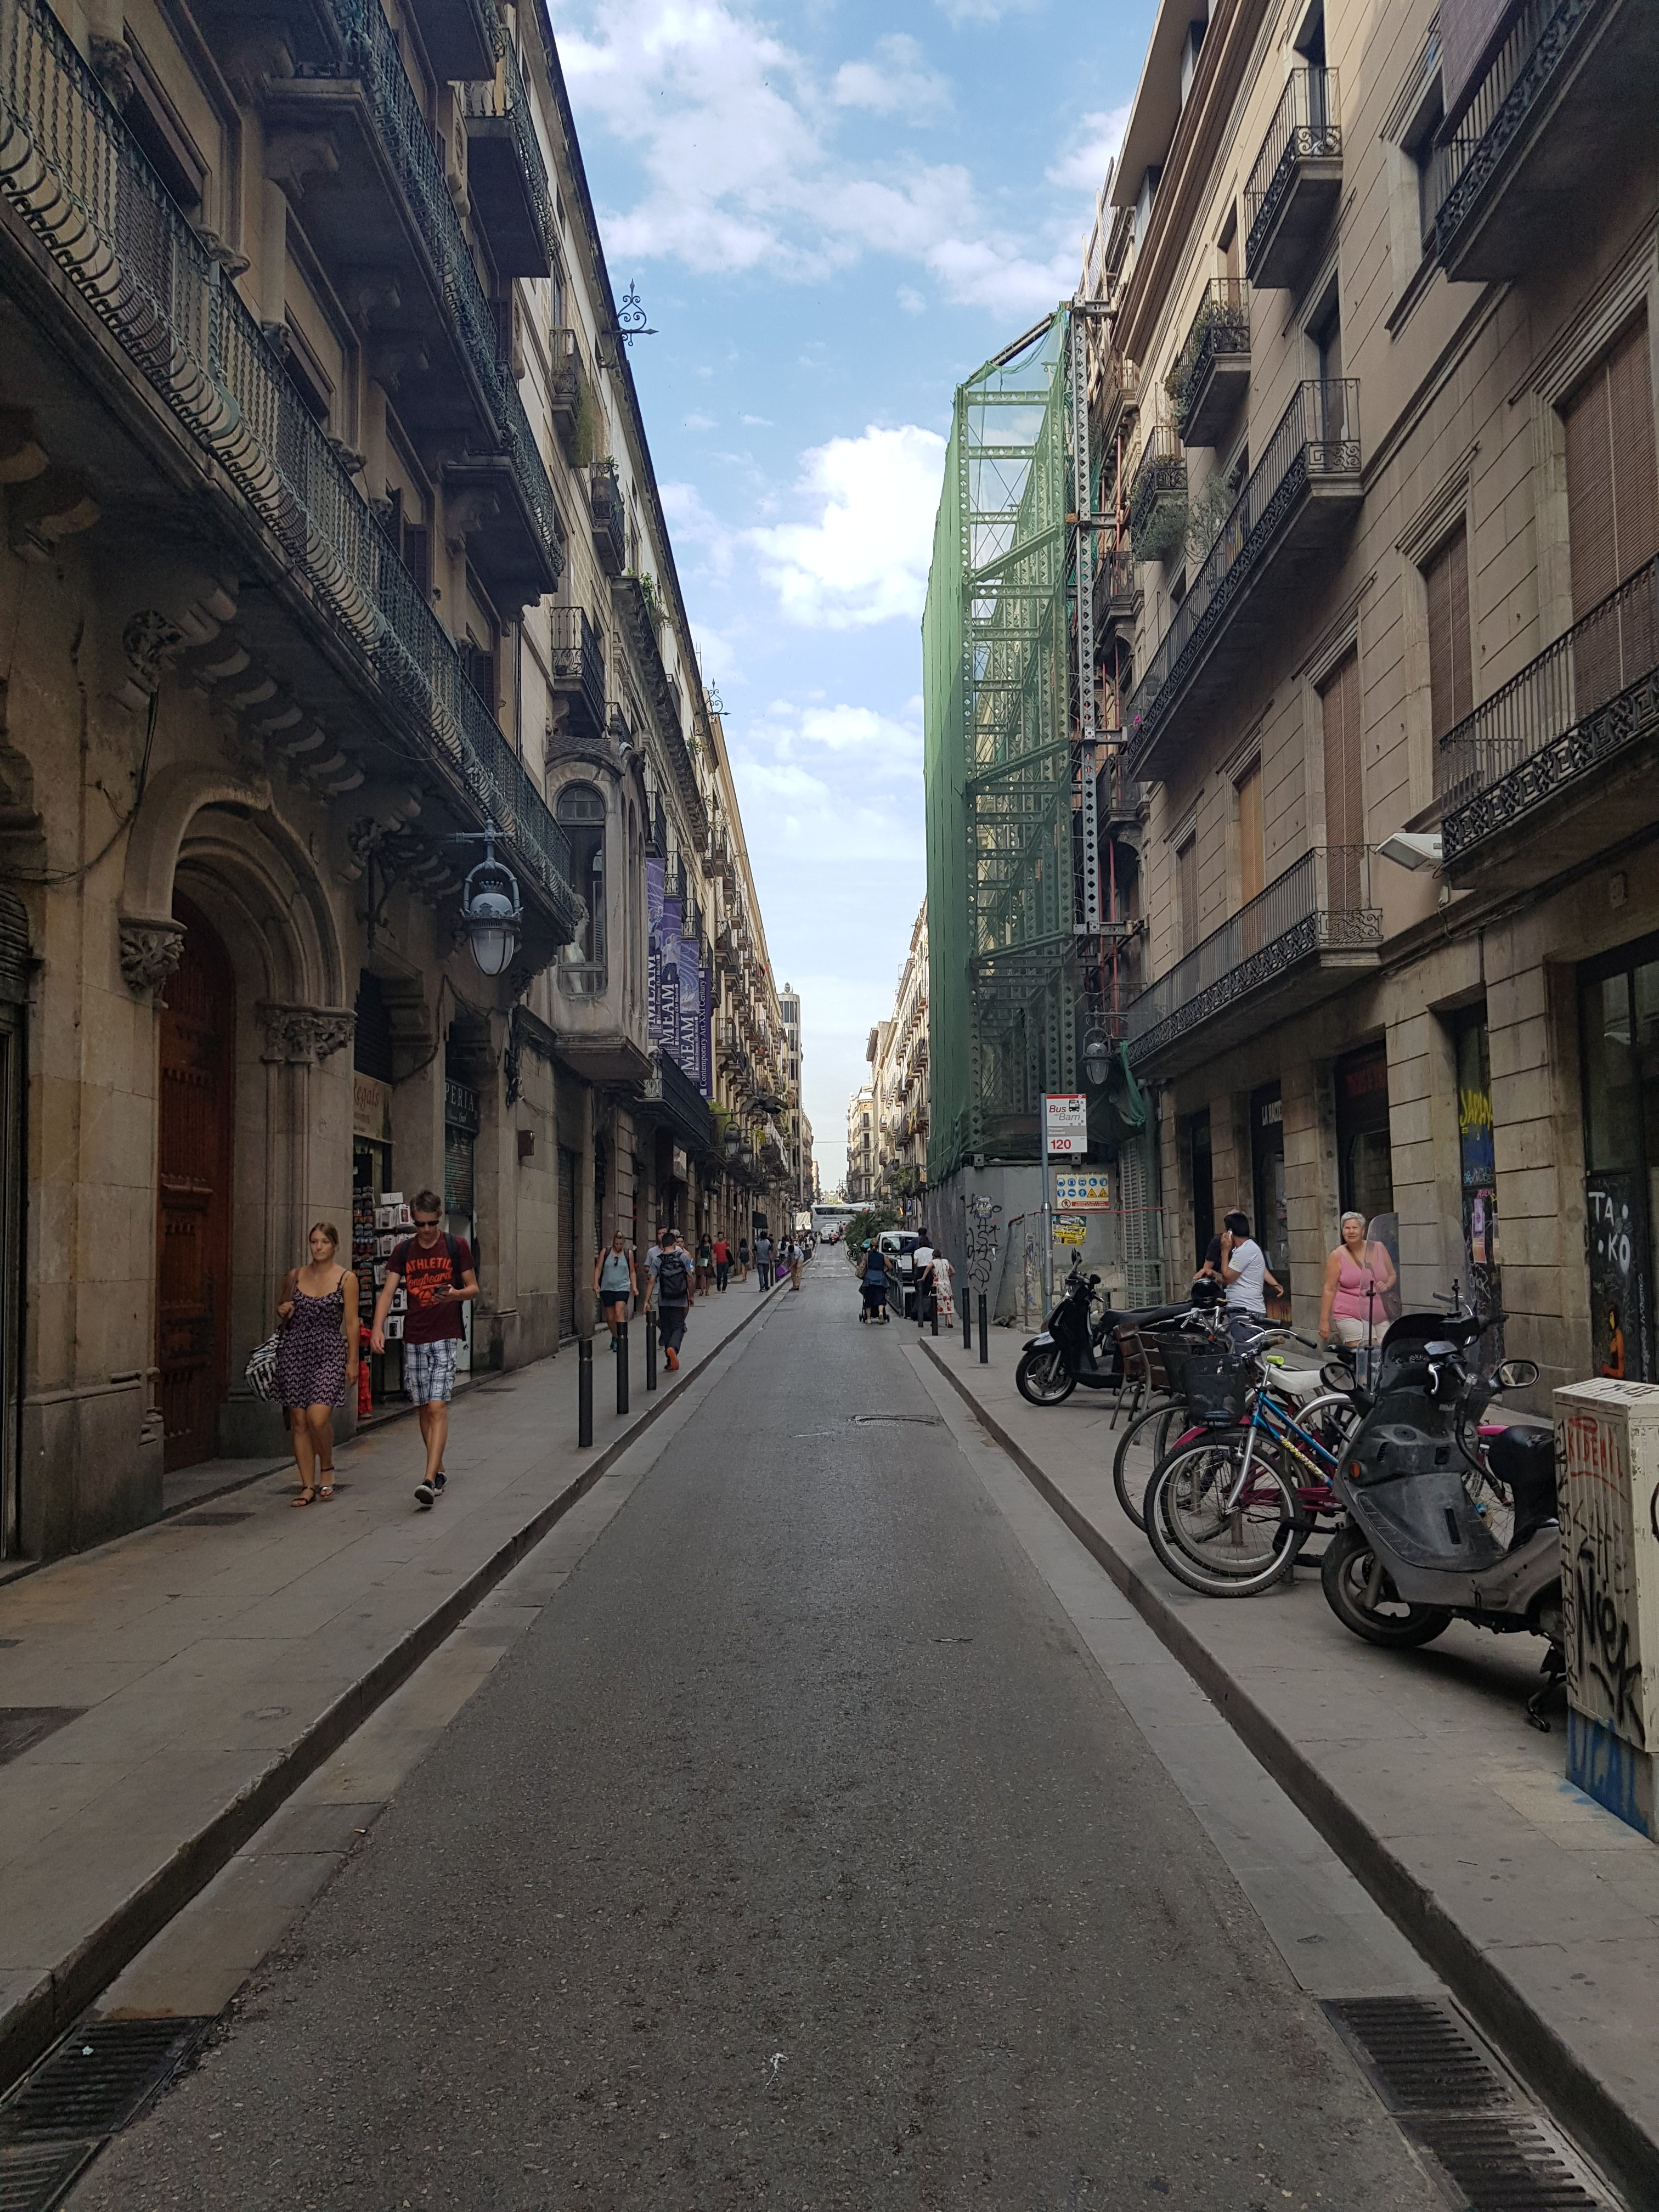 streets near picasso museum